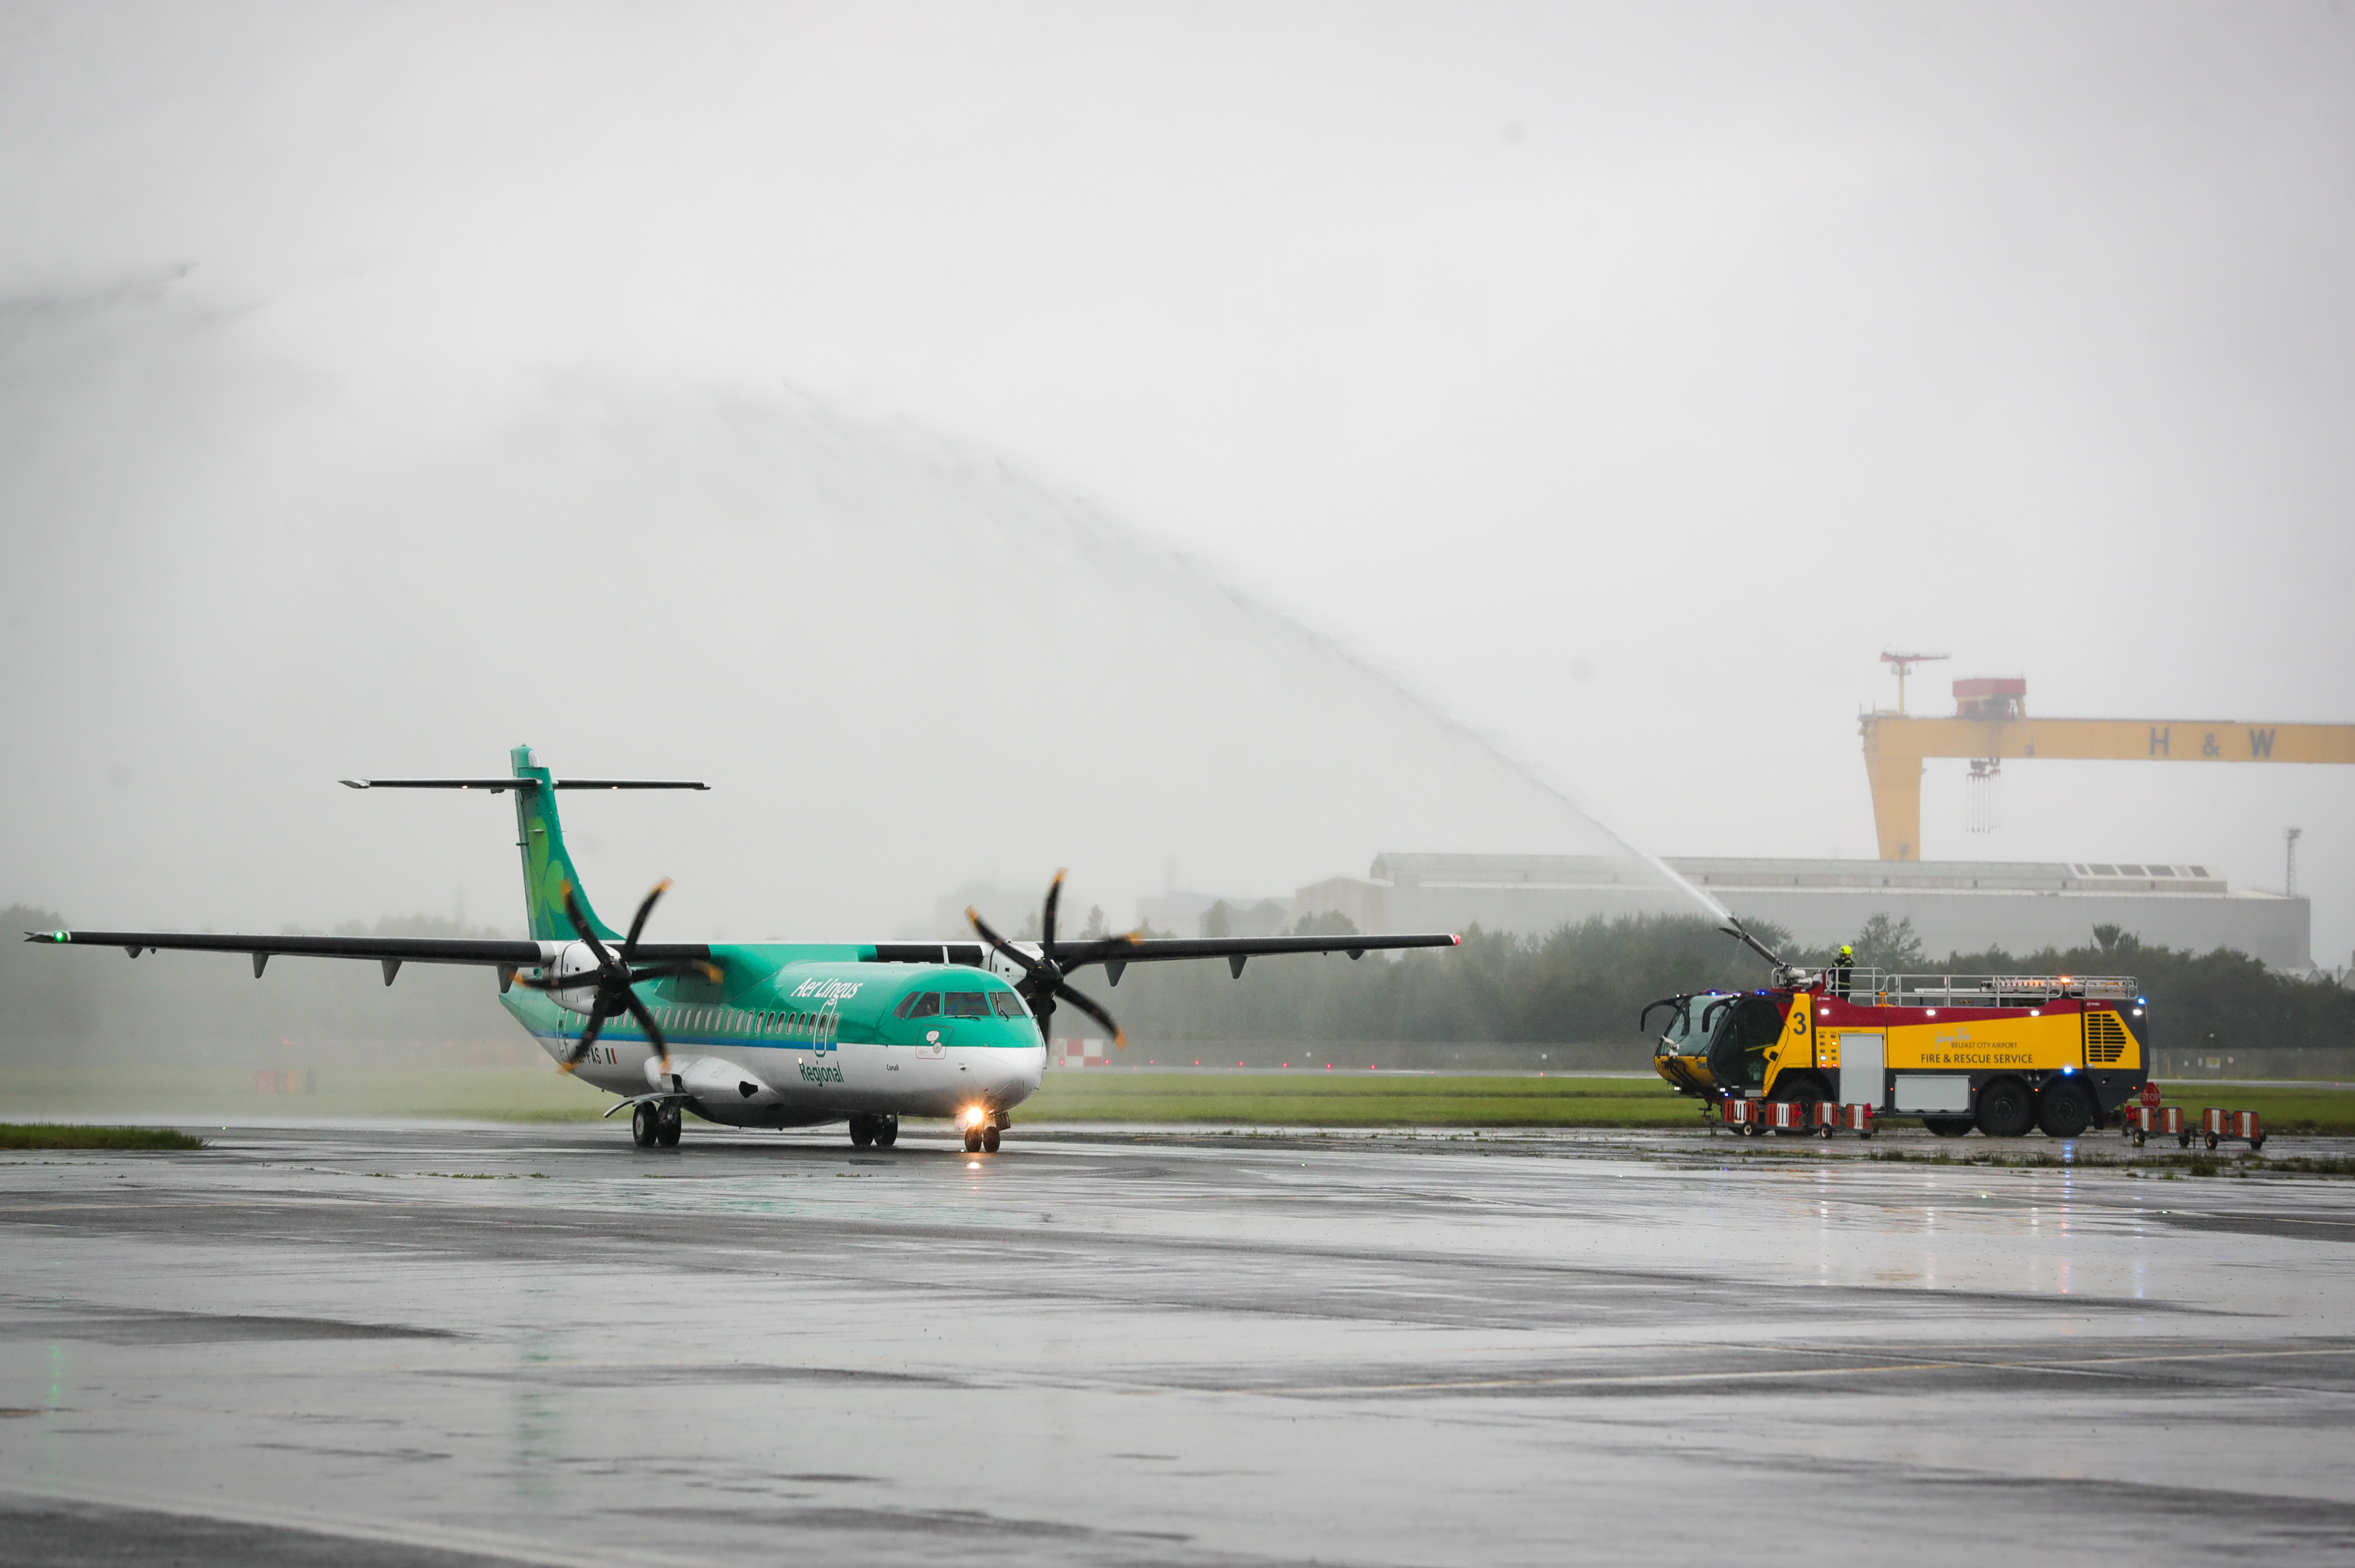 Water Cannon Salute Celebrates Start of Aer Lingus Regional Service From Belfast City Aiport to Edinburgh